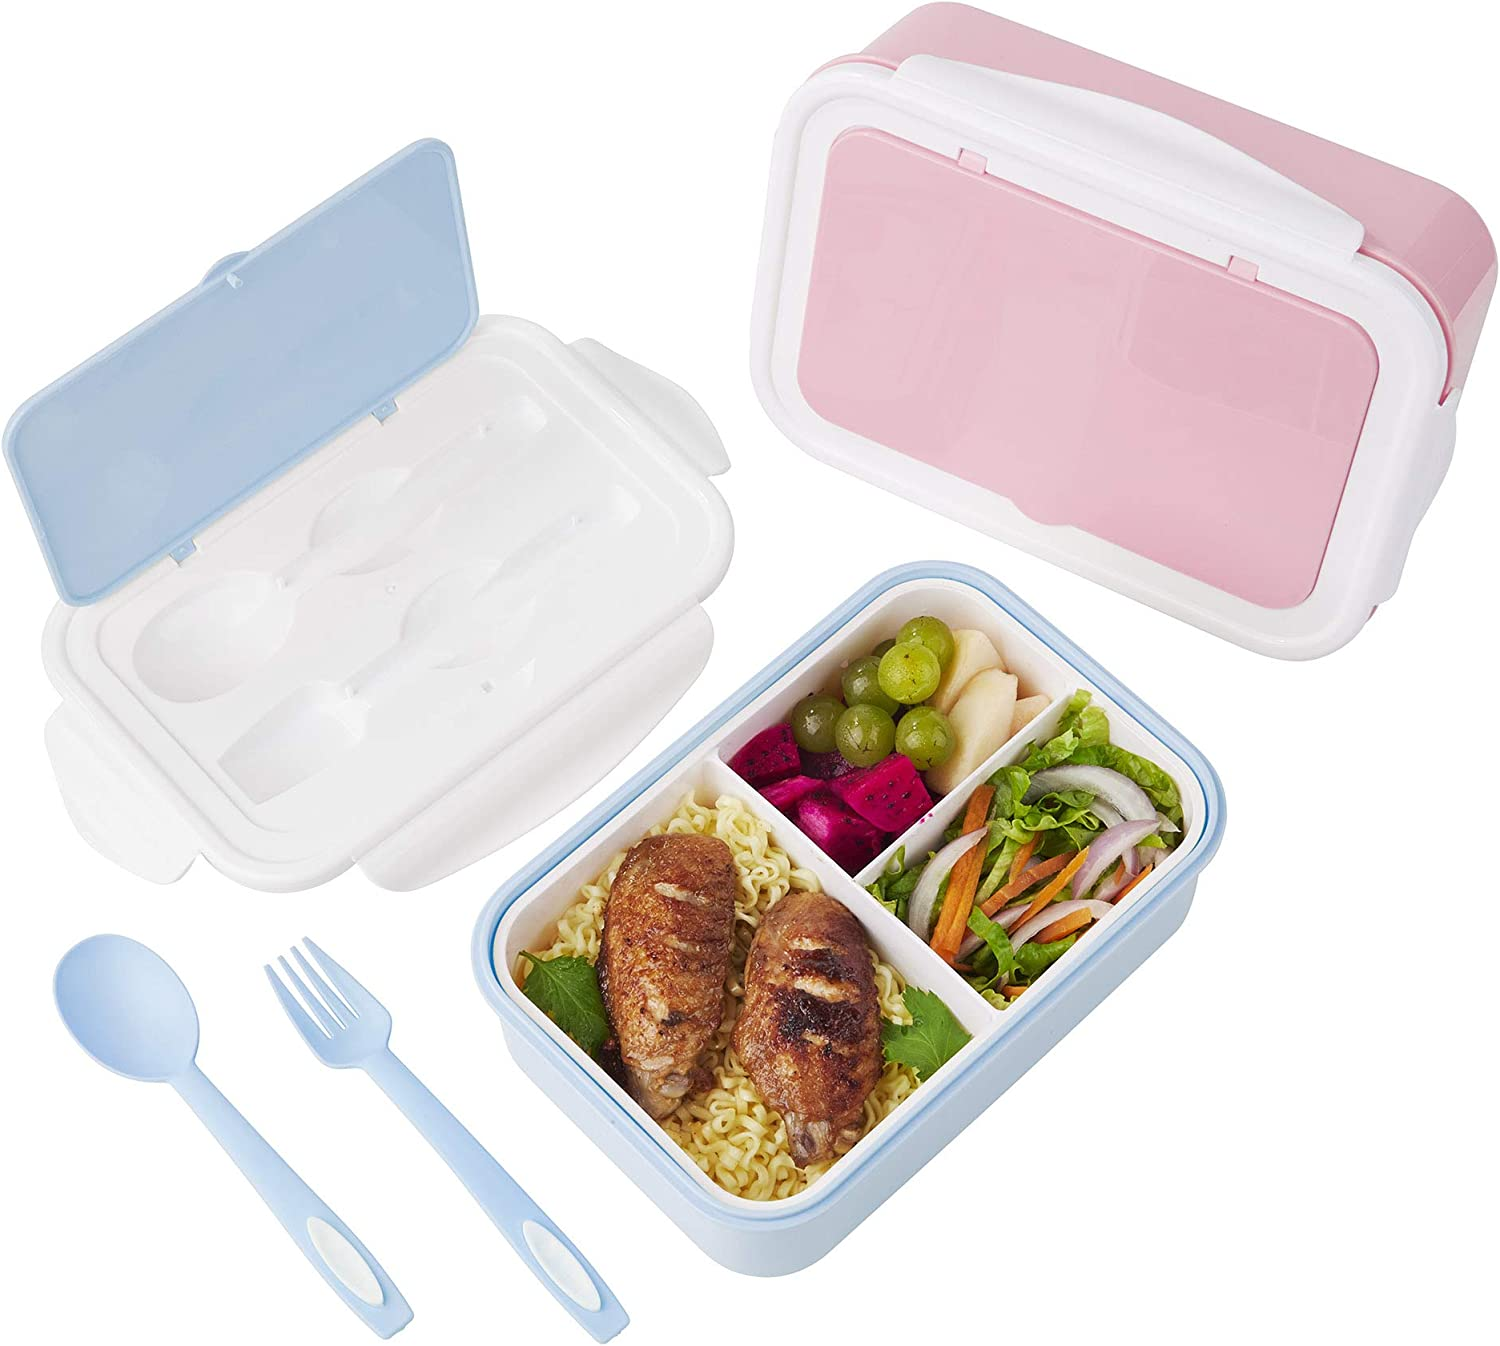 2 PACK Lunch Containers For Kids & Adults, Bento box with Spoon & Fork,Reusable 3-Compartment Divided Food Storage Container Boxes, On-the-Go Meal and Snack Packing(Pink+Blue)